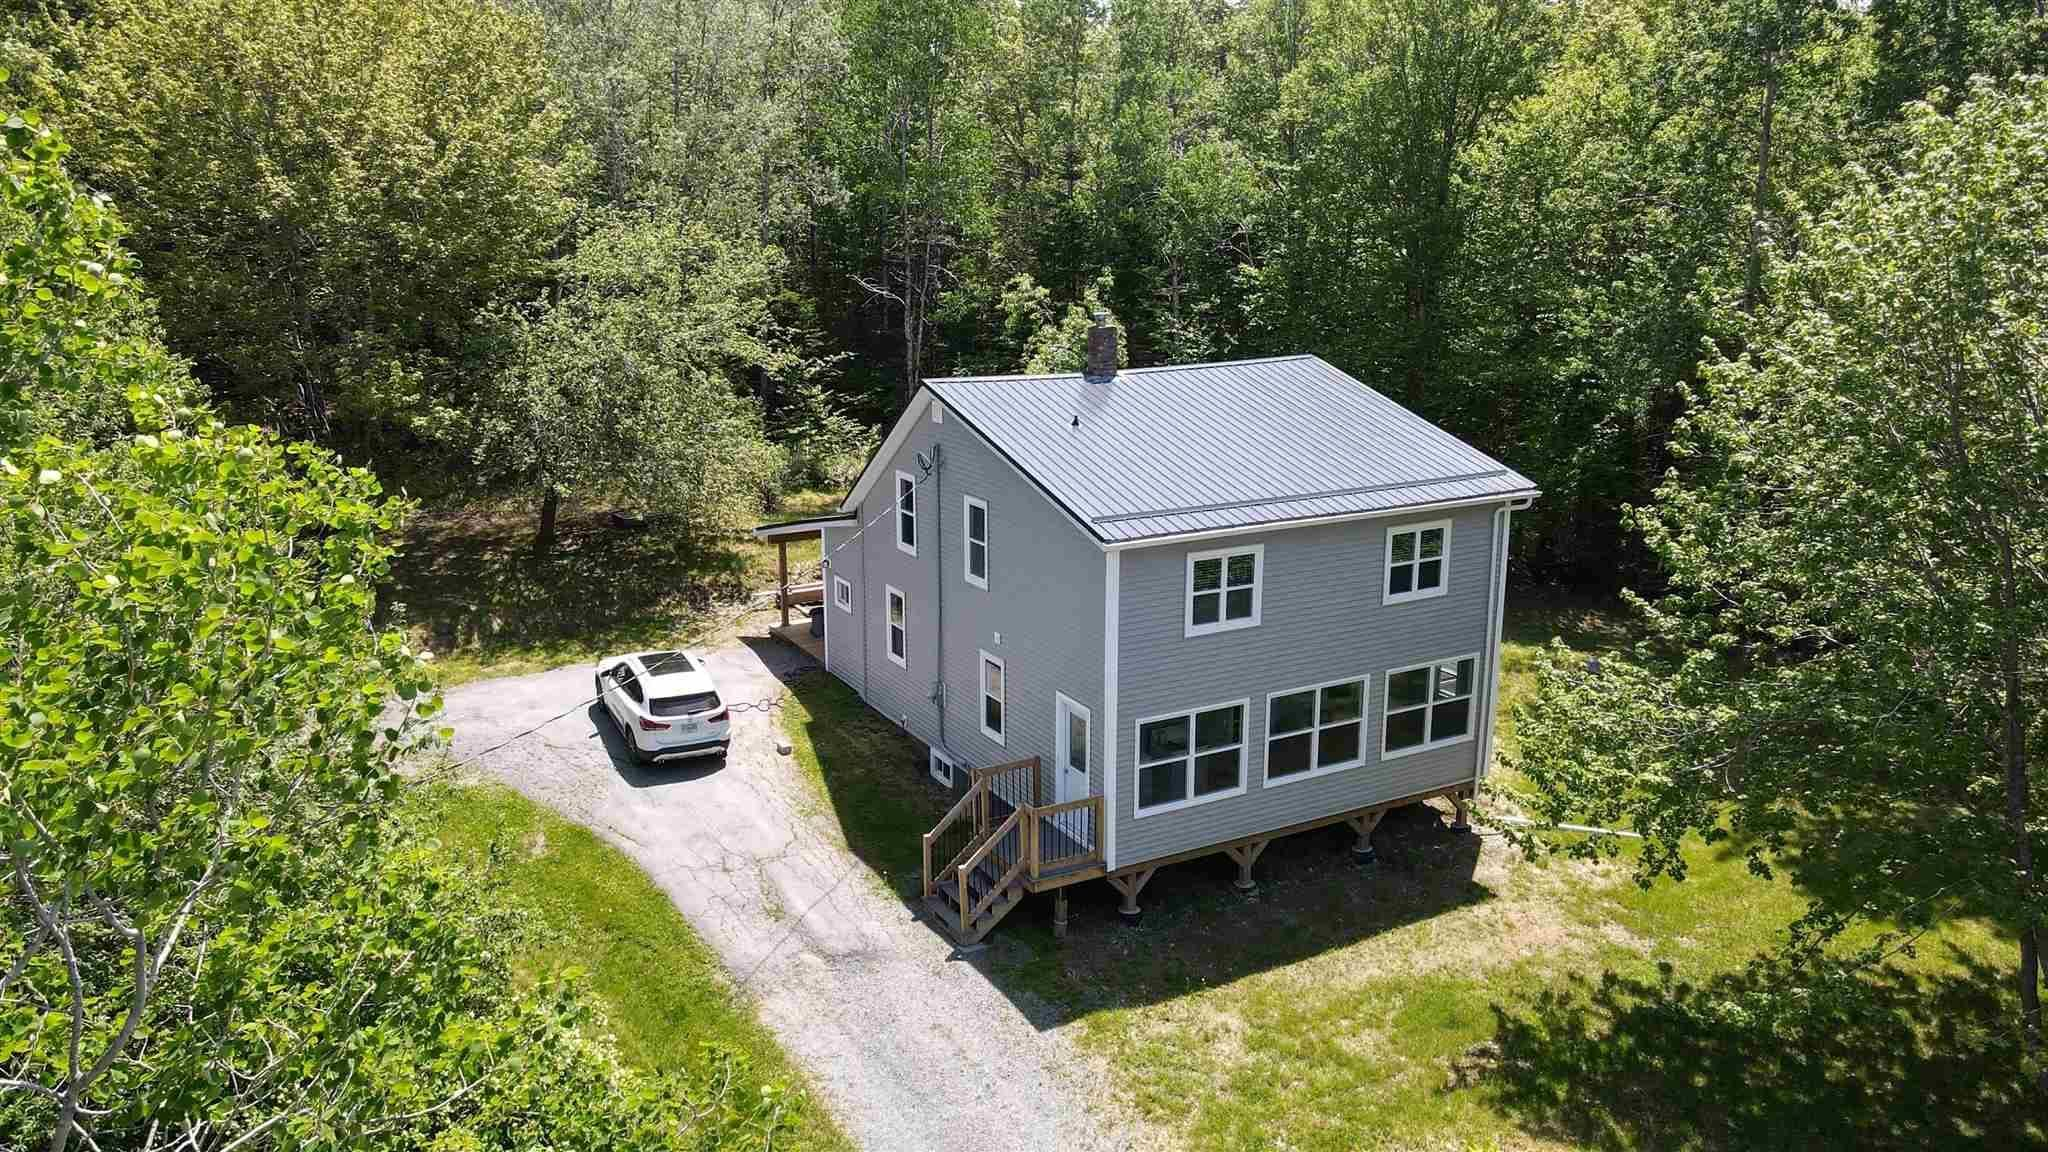 Main Photo: 284 East River Road in Sheet Harbour: 35-Halifax County East Residential for sale (Halifax-Dartmouth)  : MLS®# 202120106